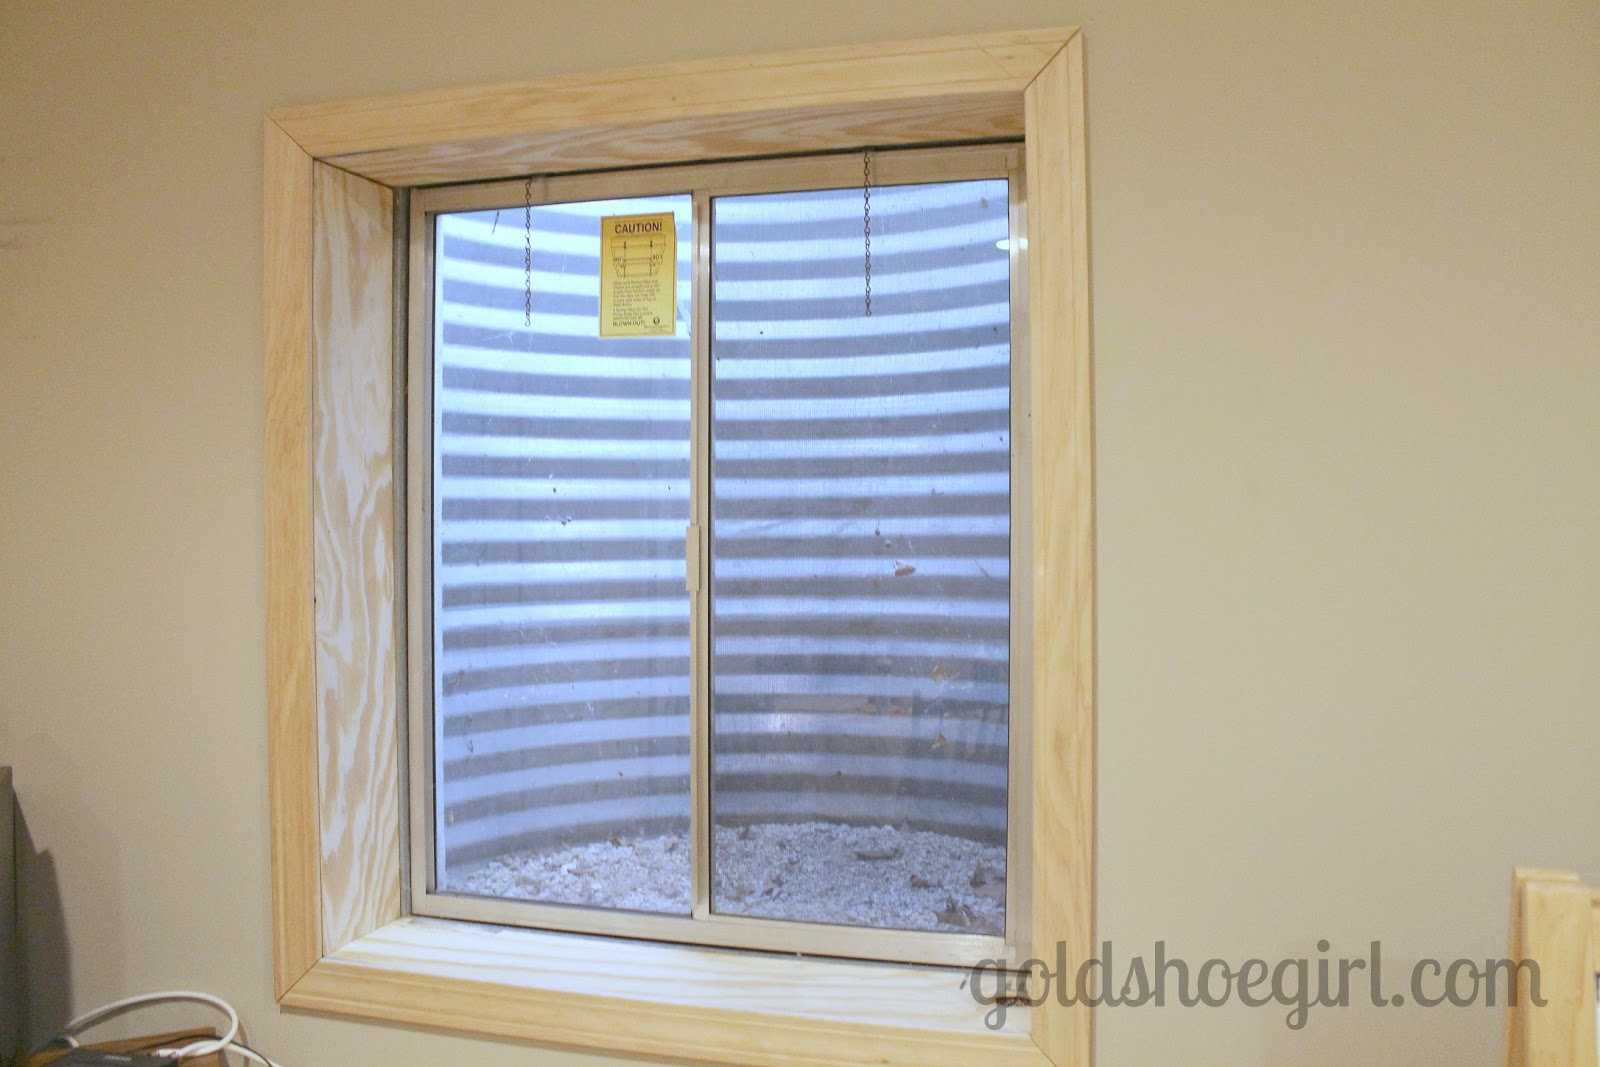 the first project was to frame out this window with some plywood and